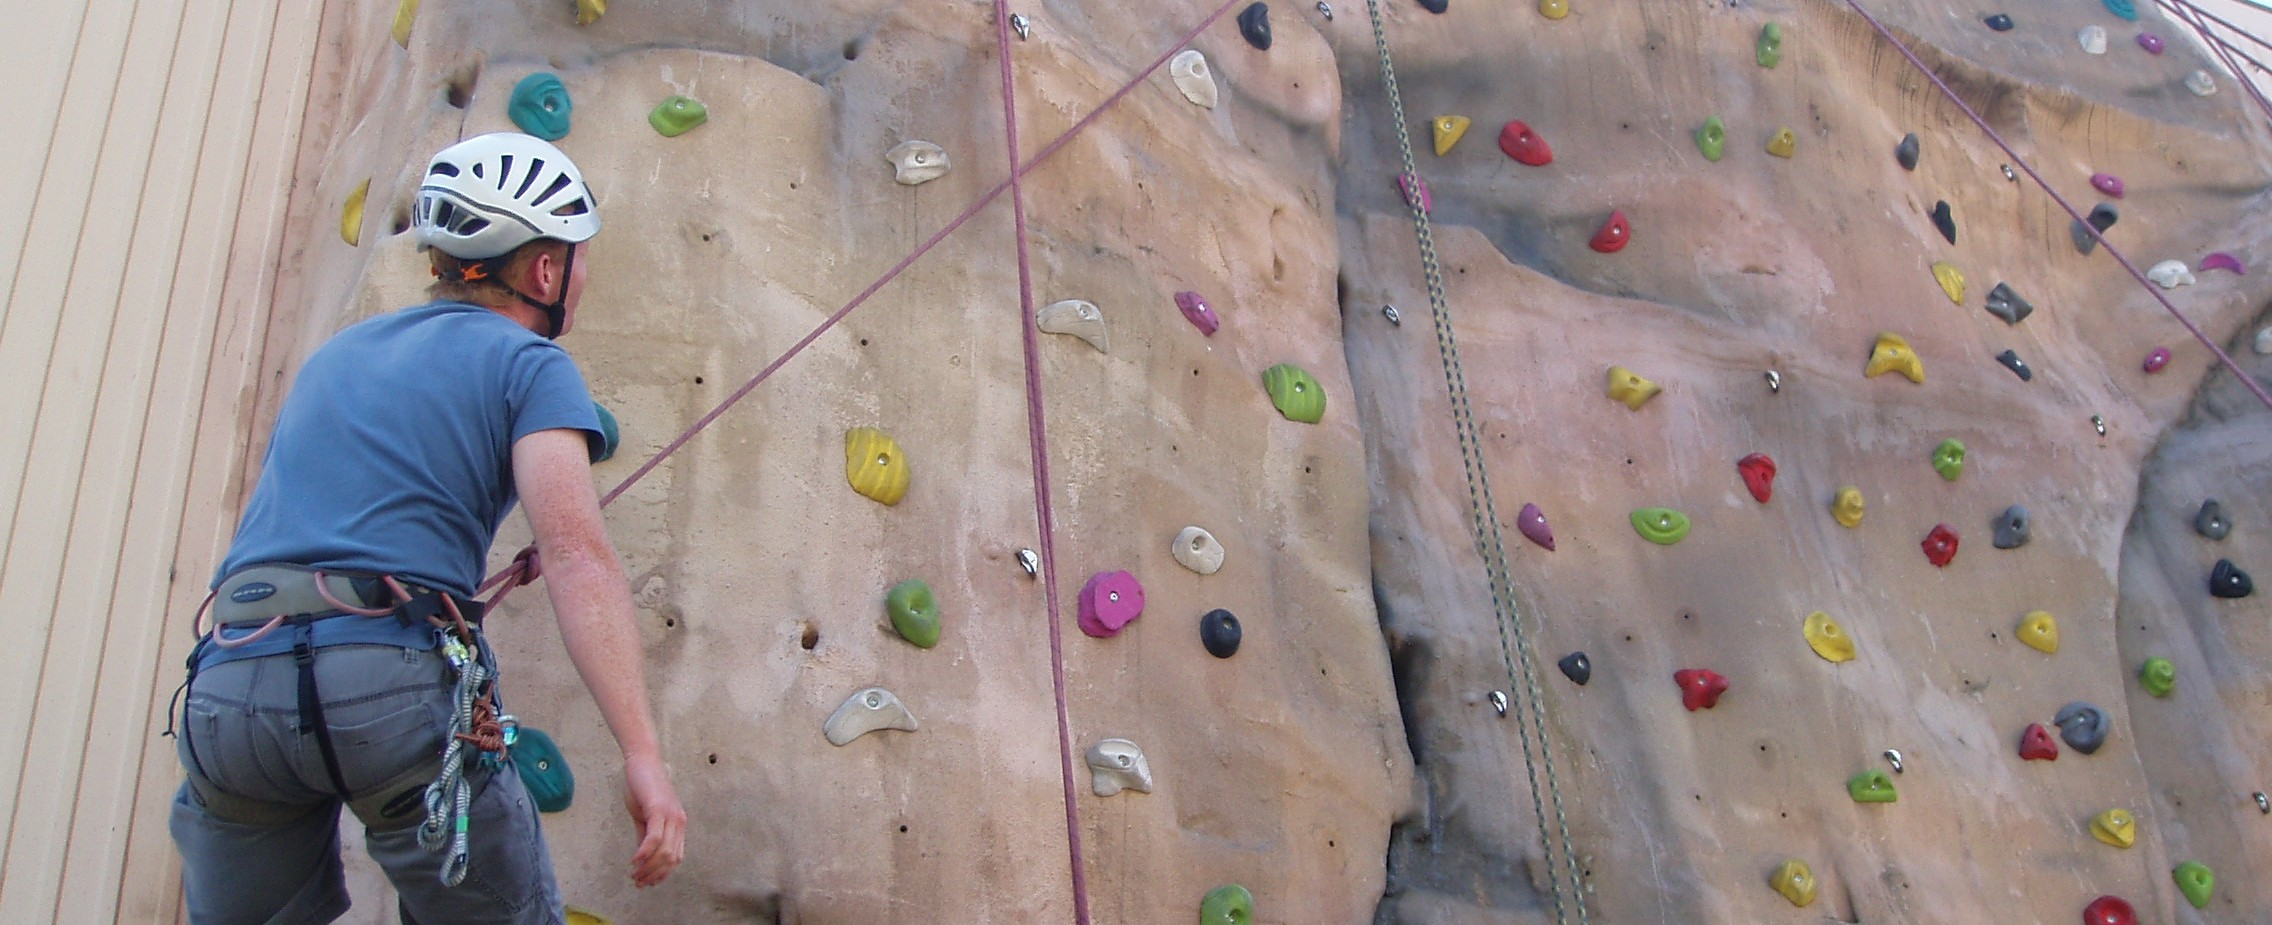 http://www.theadventurebrand.co.uk/climbing-wall-award-2/